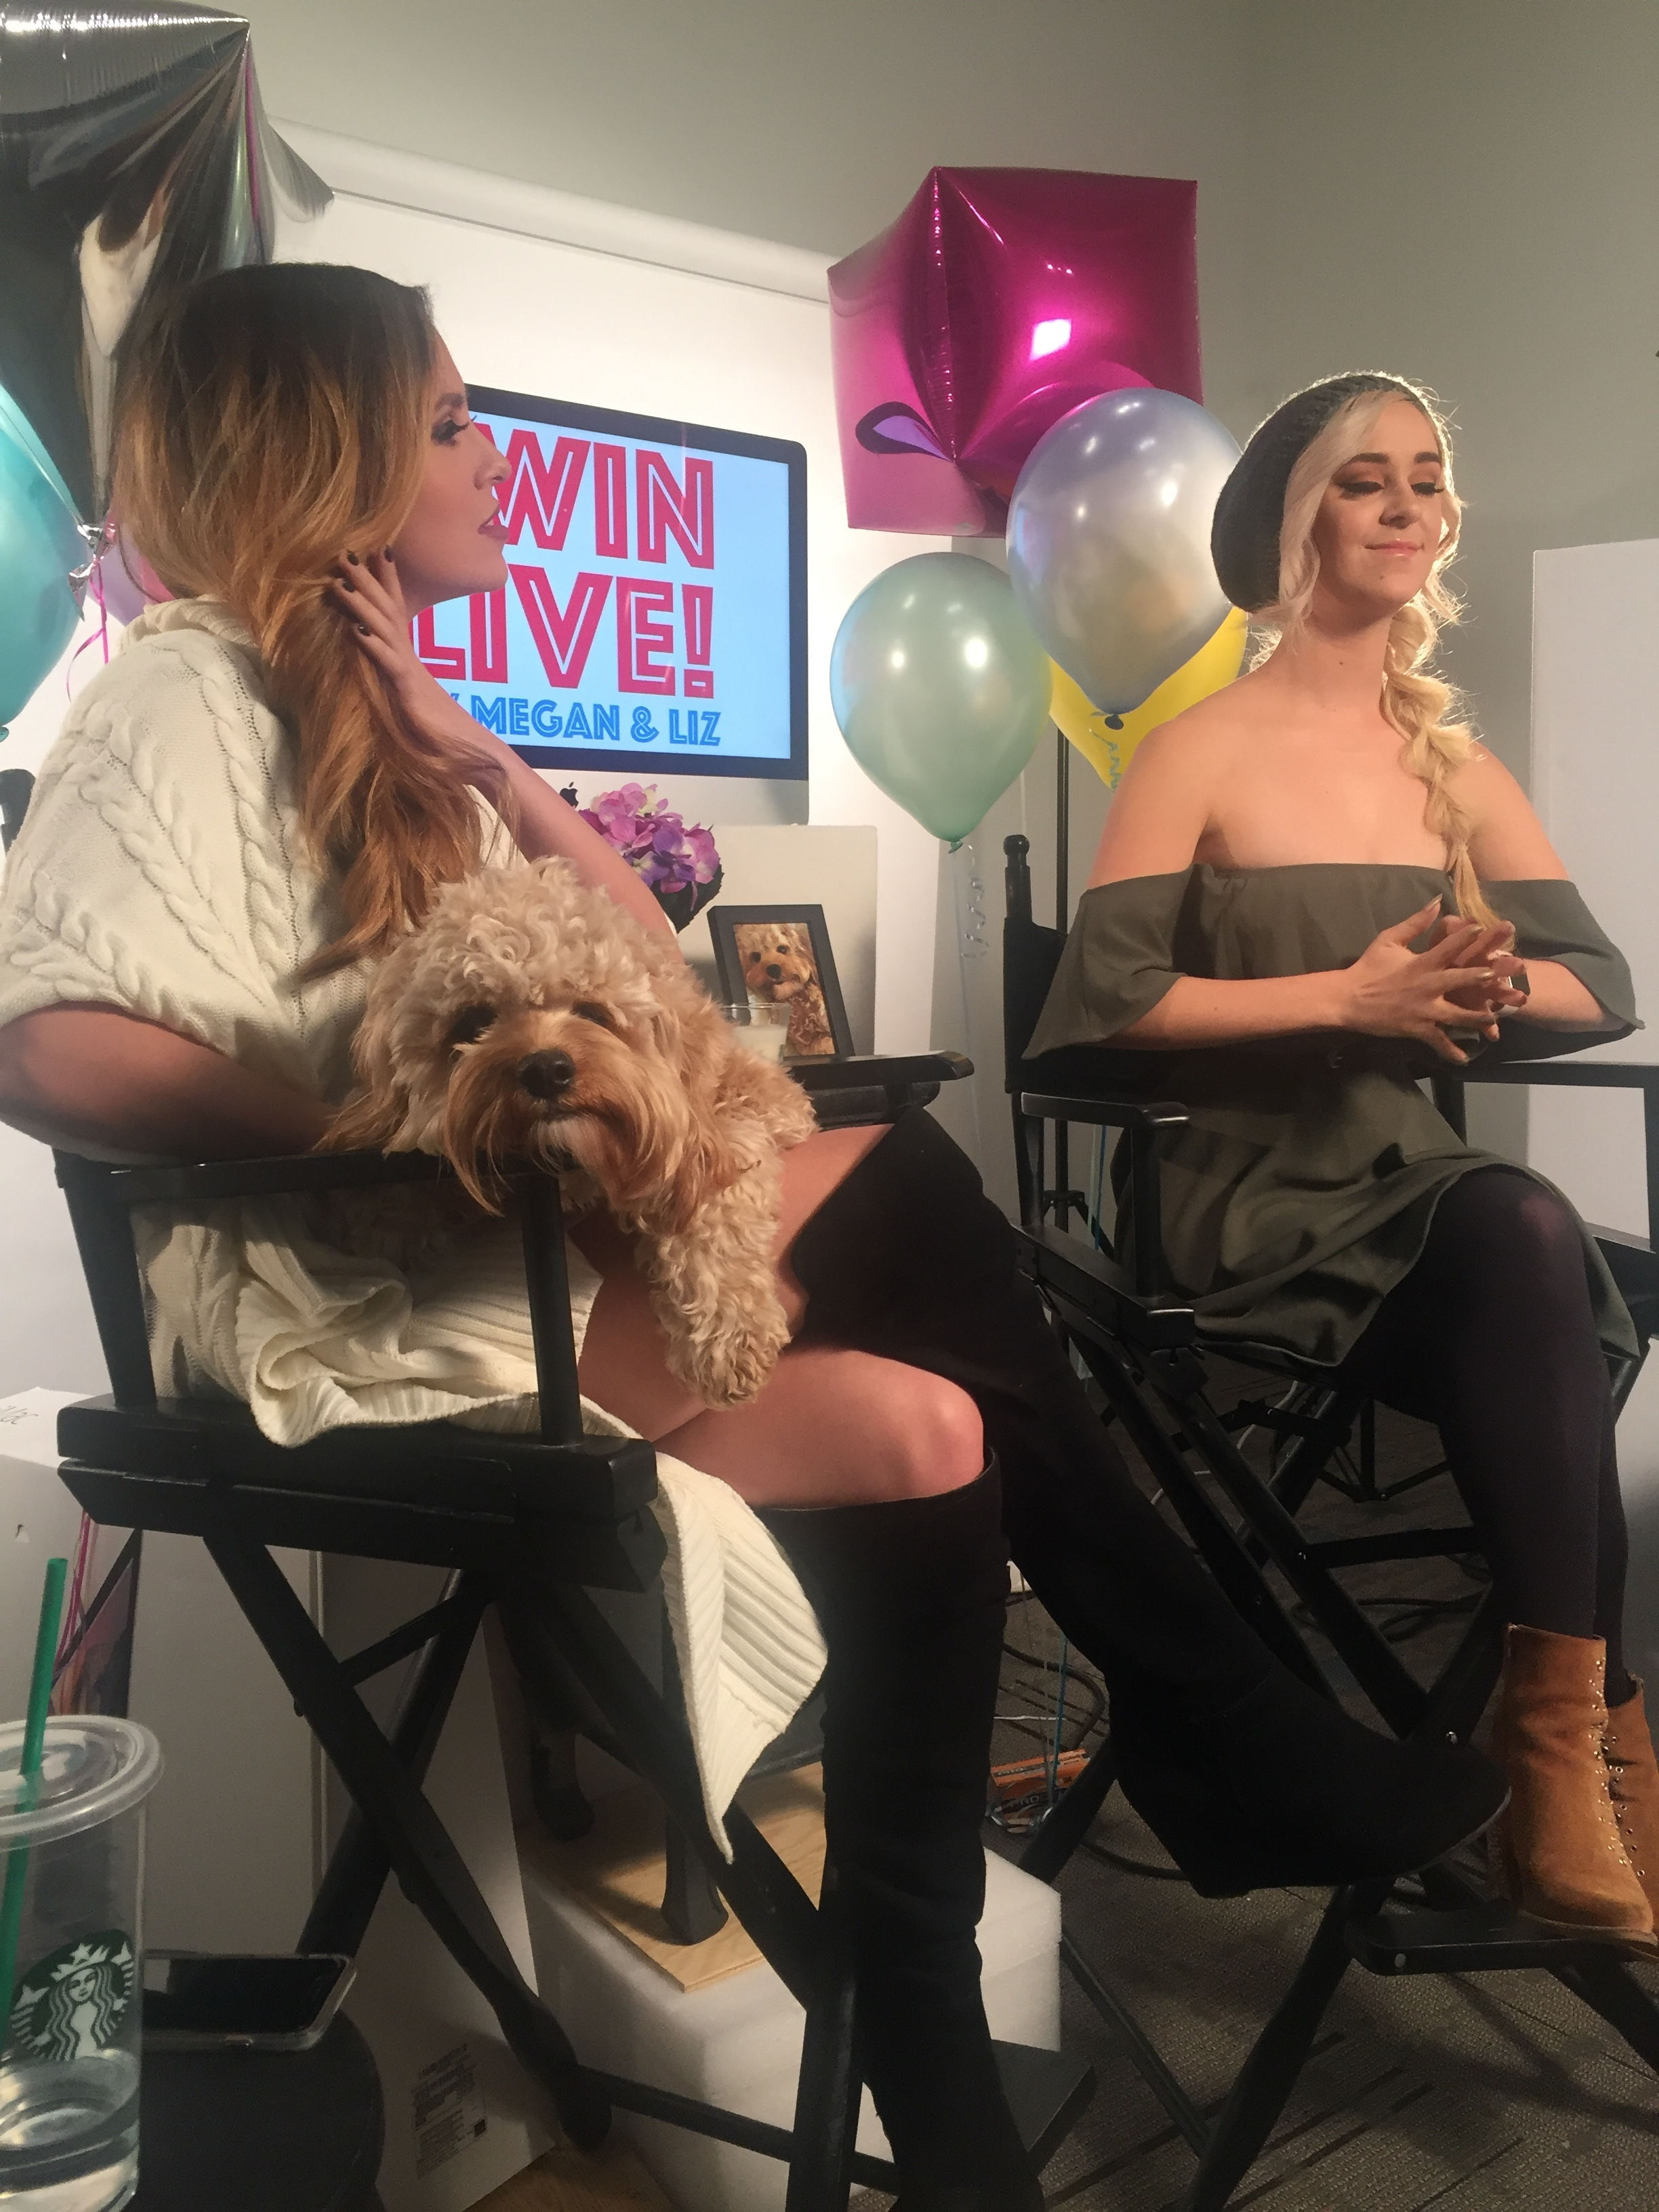 FALL 2016 - PRODUCING 'TWIN LIVE' - A FACEBOOK LIVE SHOW FEATURING MEGAN & LIZ FOR MY COUNTRY NATION